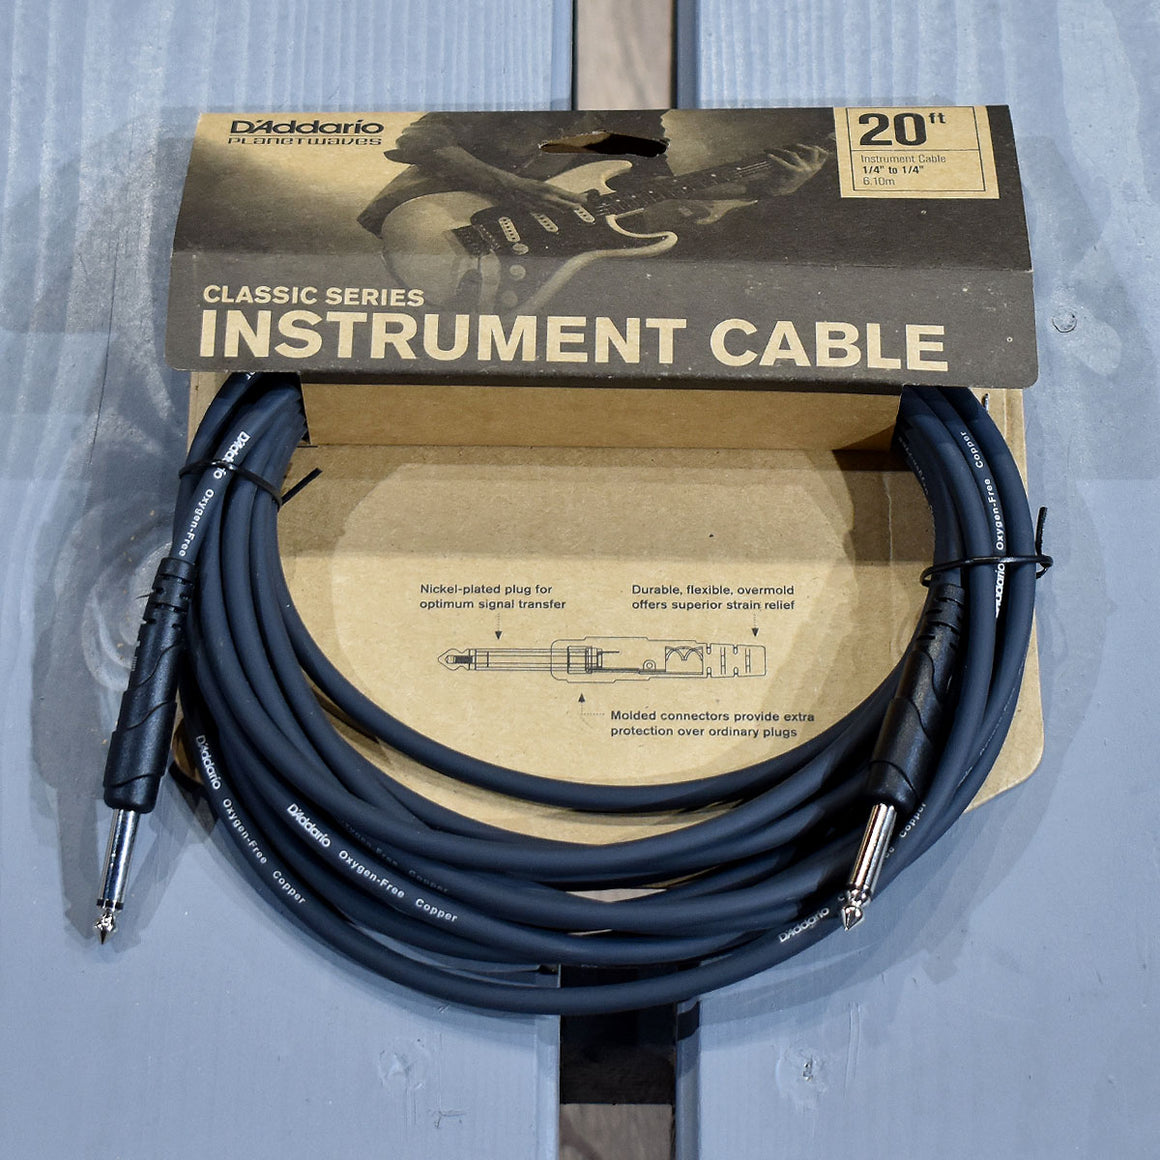 D'Addario Classic Series 20ft Straight Instrument Cable